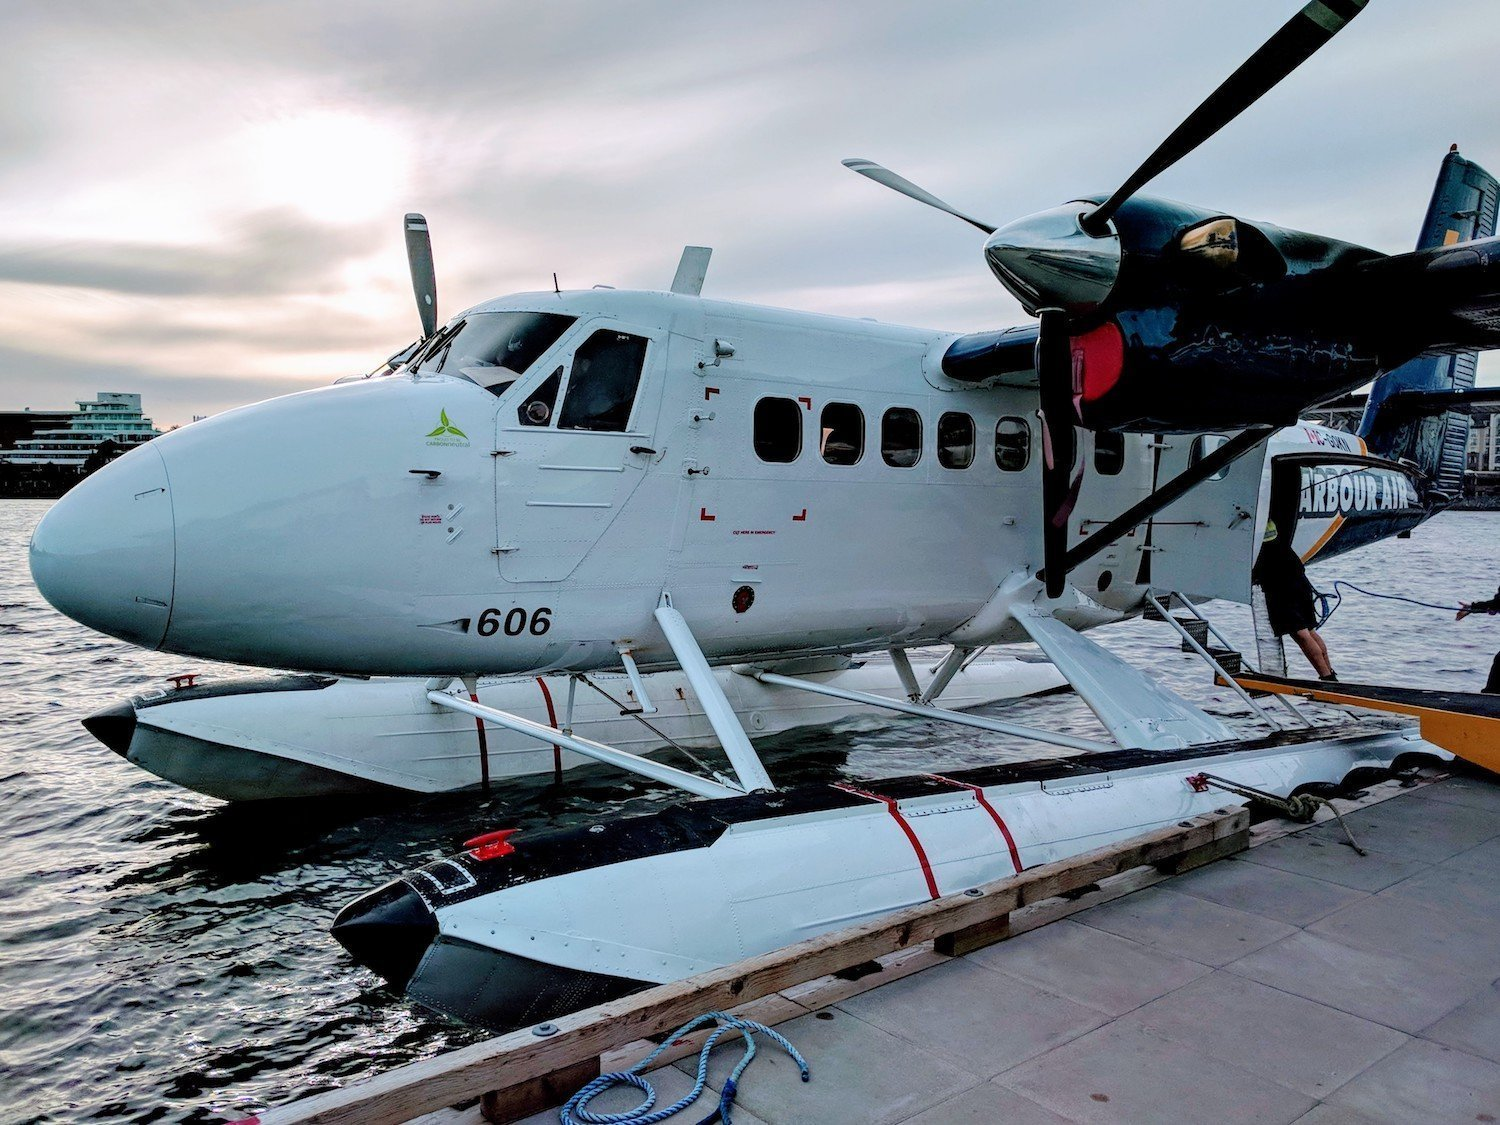 Grit, Grease and Ingenuity: Keeping a Workhorse Seaplane